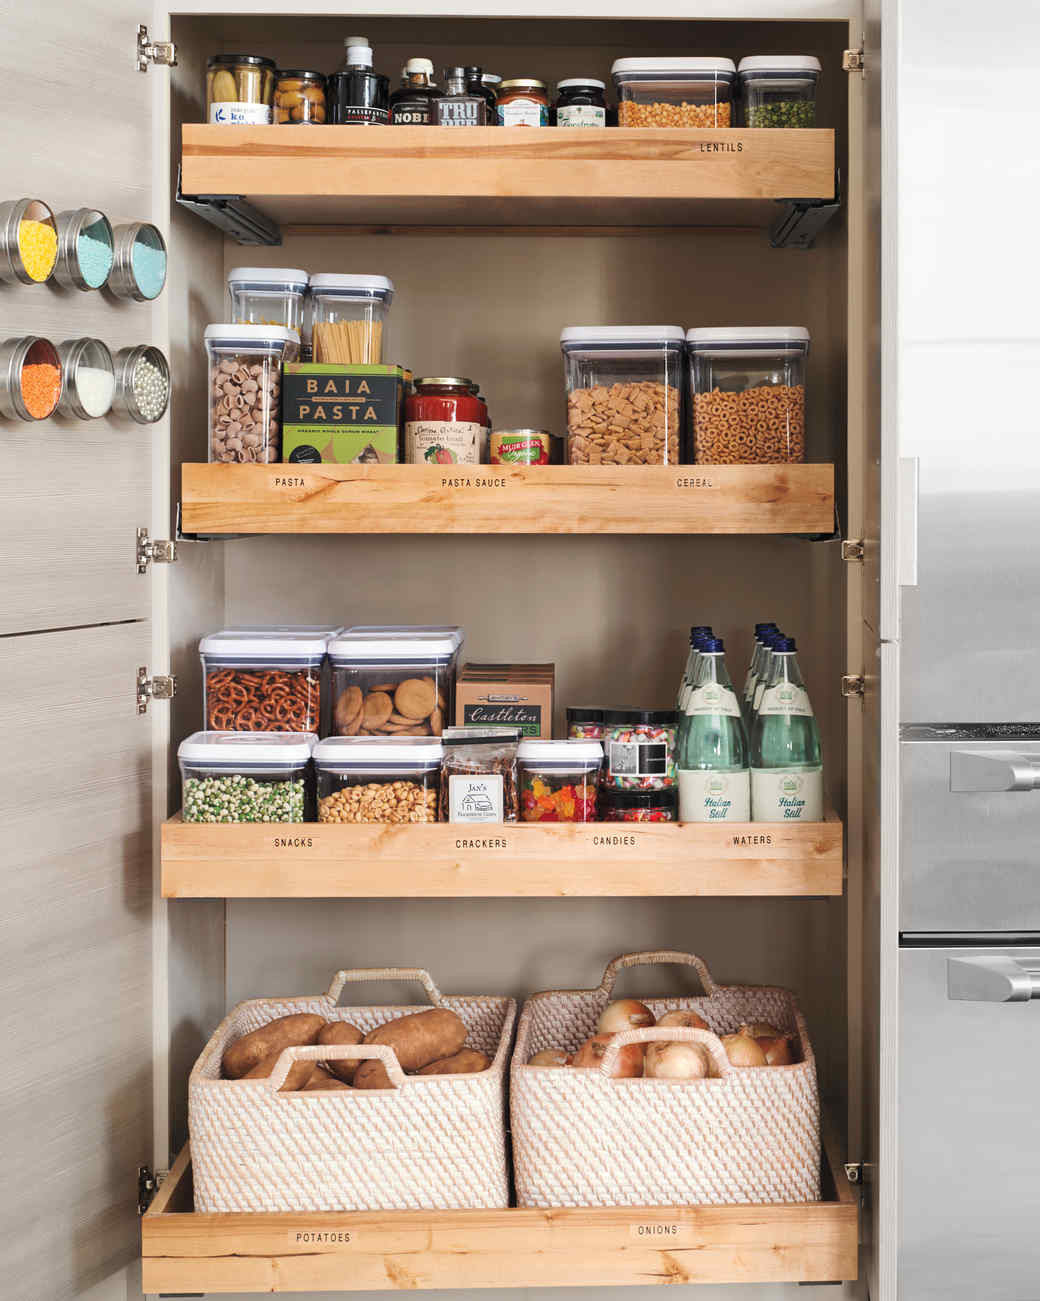 Best ideas about Pantry Shelving Ideas . Save or Pin 10 Best Pantry Storage Ideas Now.